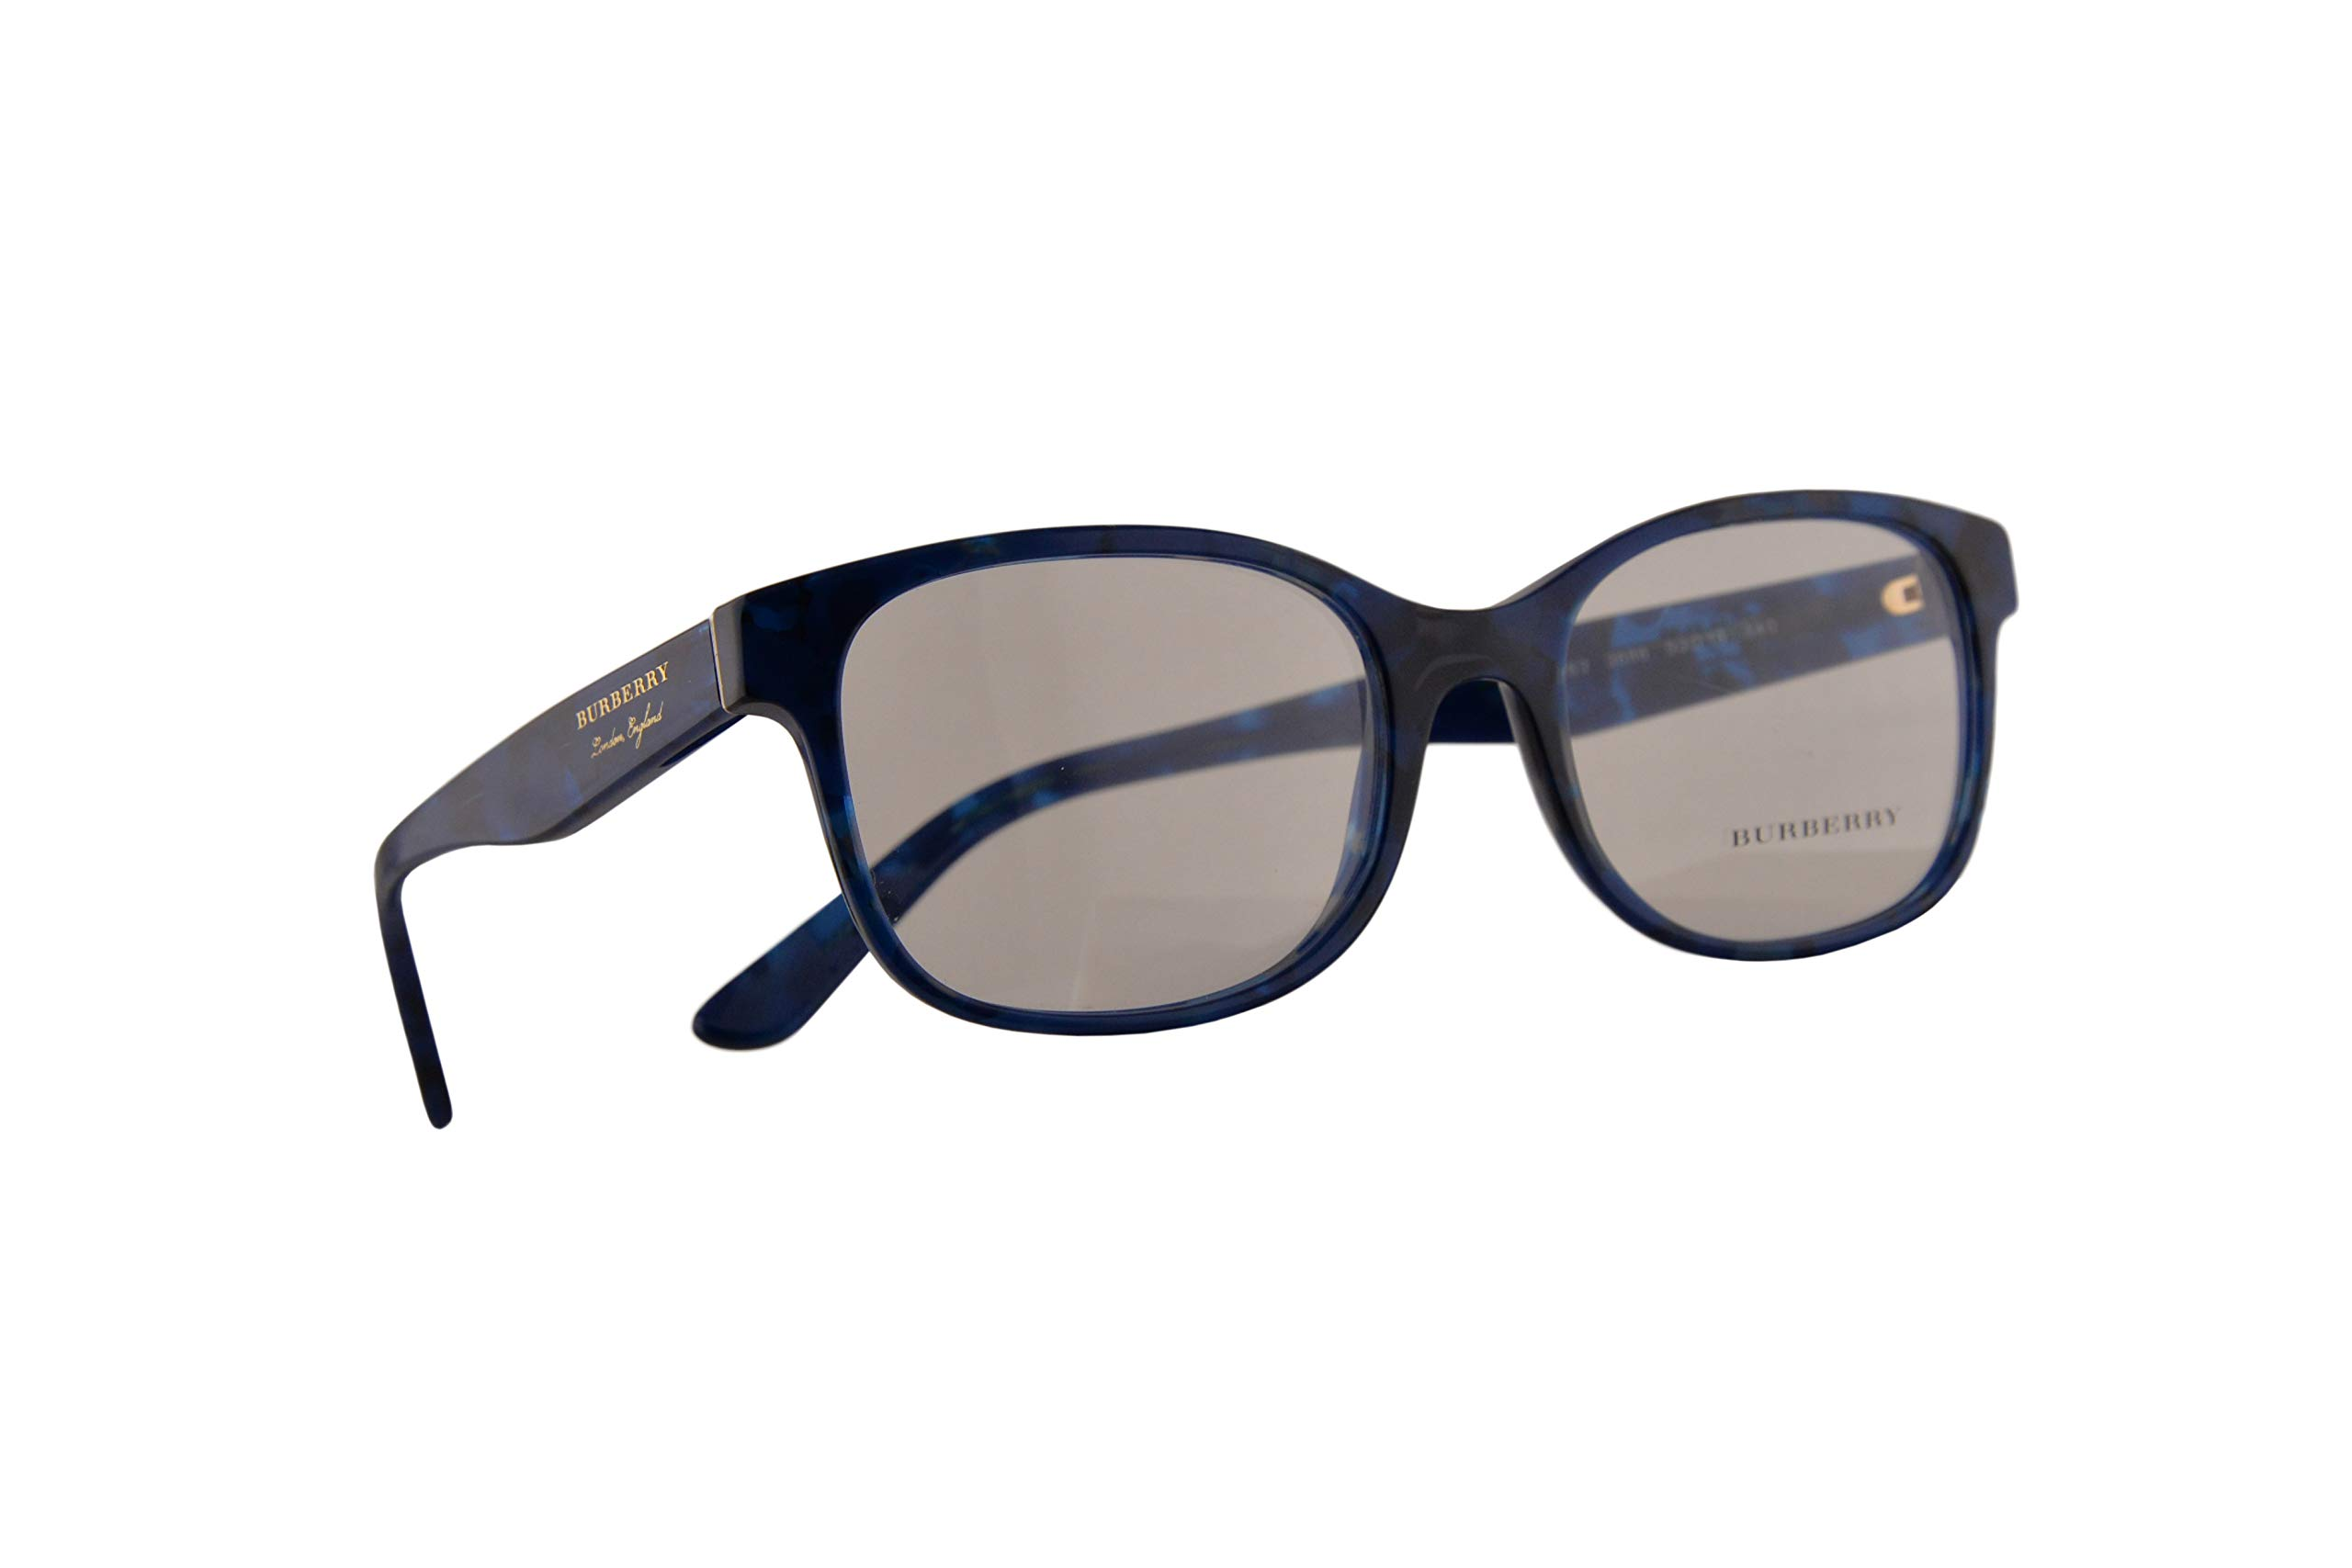 Burberry B 2263 Eyeglasses 53-18-140 Blue Havana w/Demo Clear Lens 3686 BE BE2263 B2263 by BURBERRY